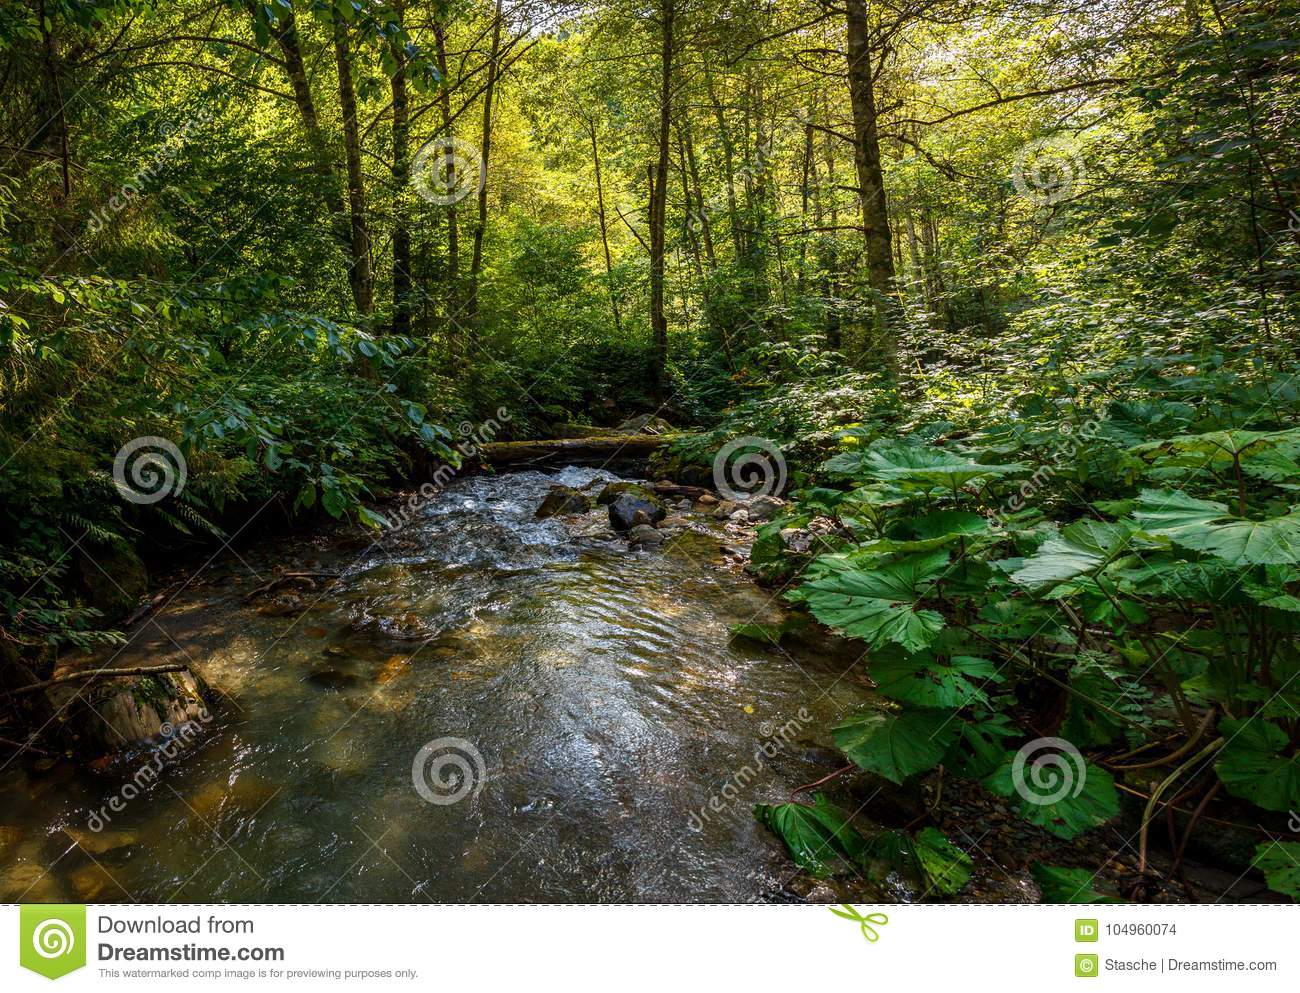 Lush green forest with tranquil stream